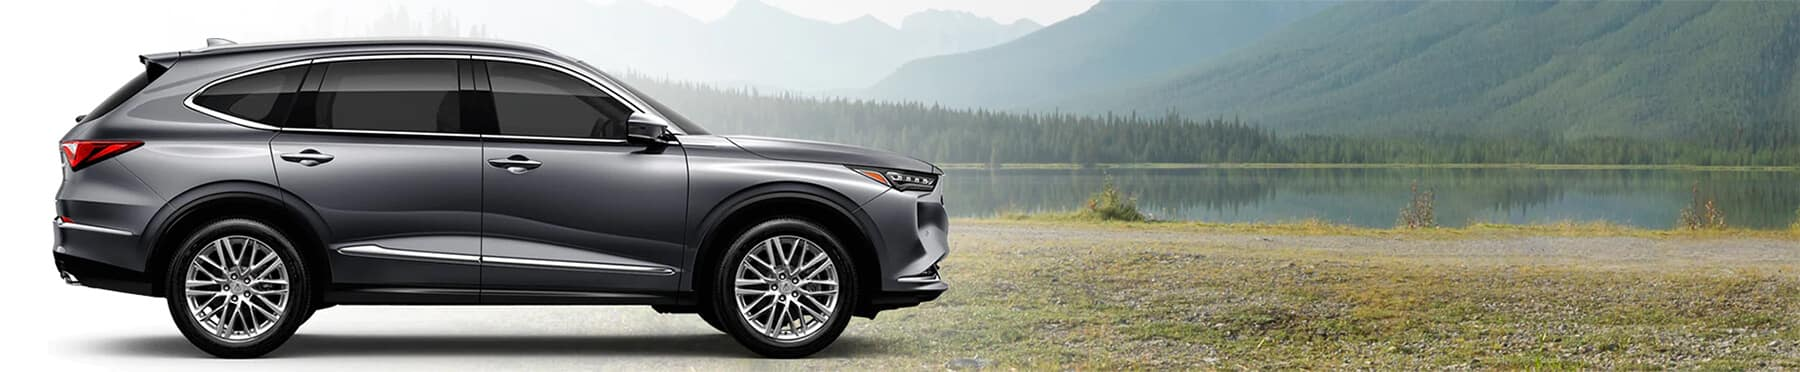 Acura MDX Lease Deals in Sioux Falls, SD Banner